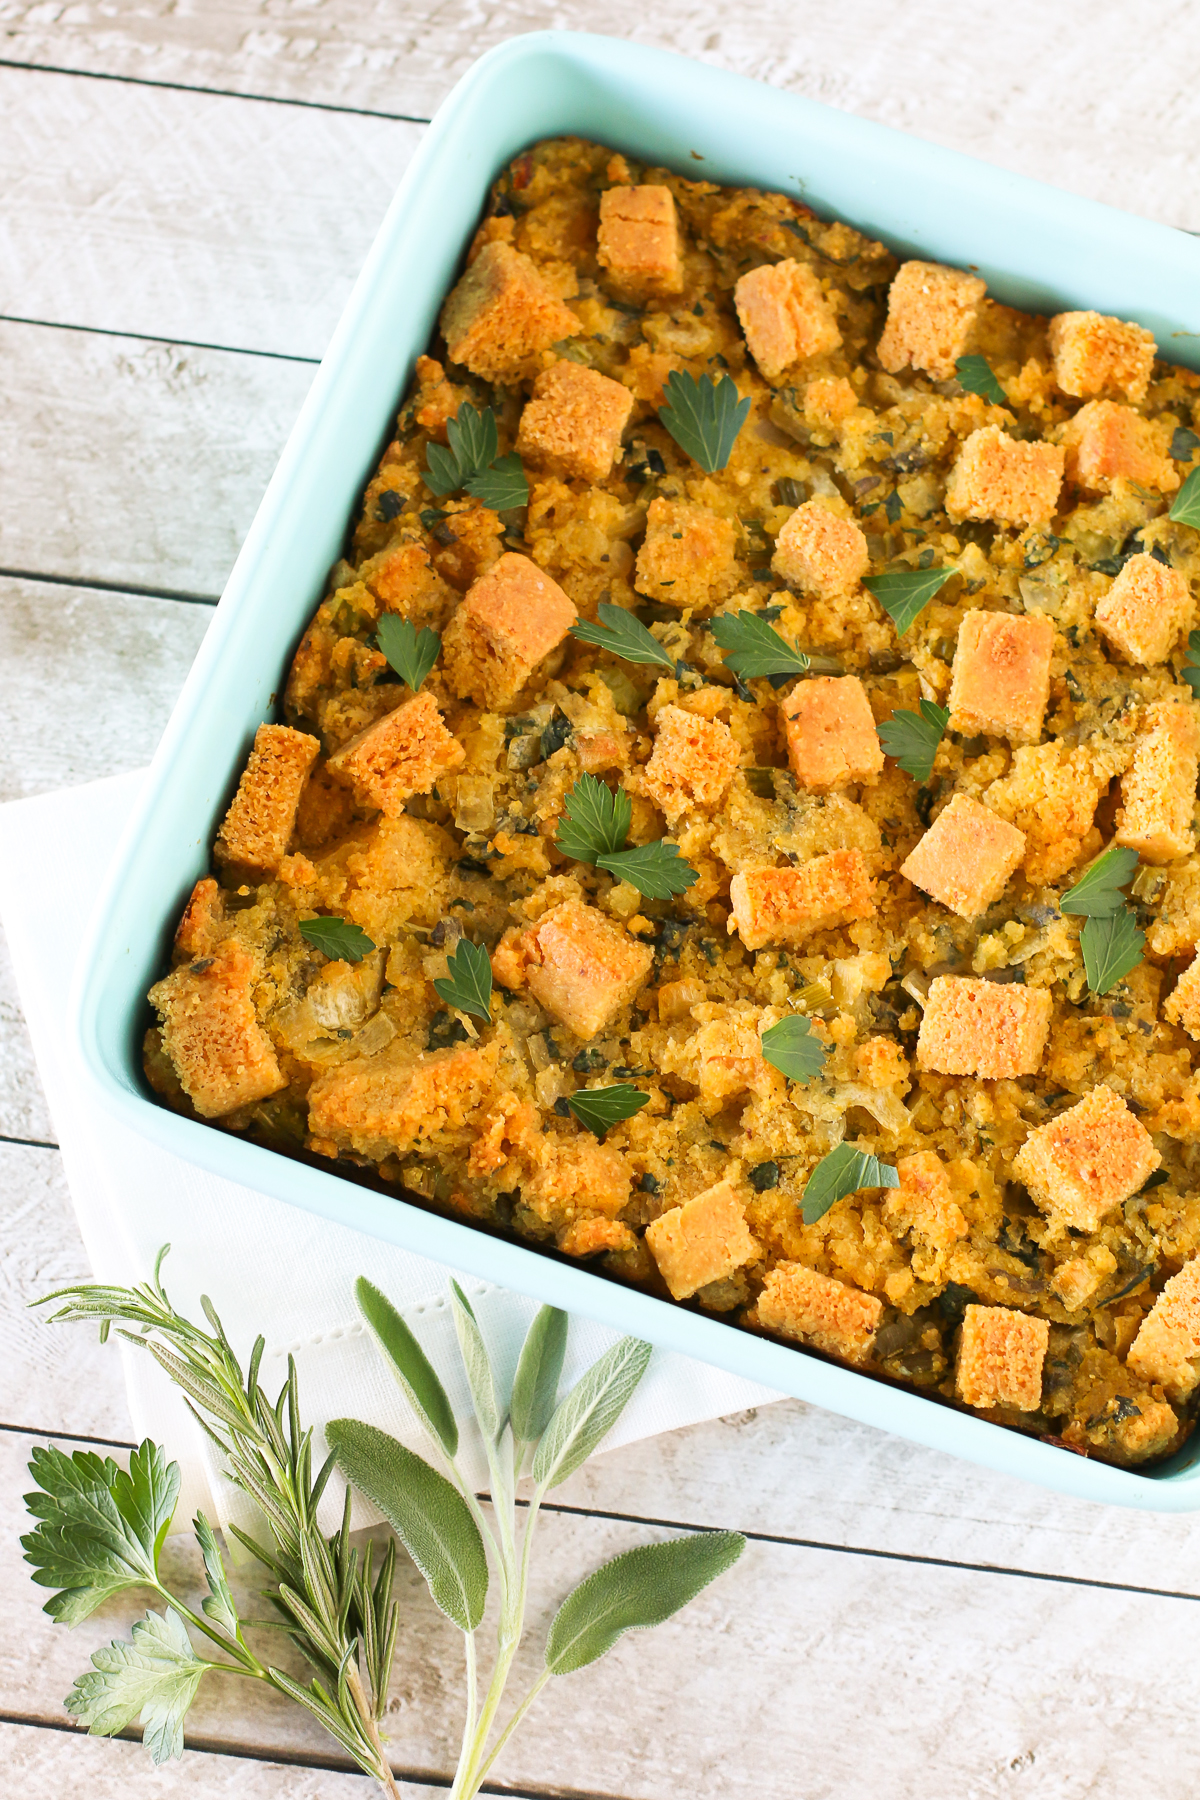 Gluten Free Vegan Cornbread Stuffing. Moist and packed with fresh herbs, this cornbread stuffing is so flavorful!